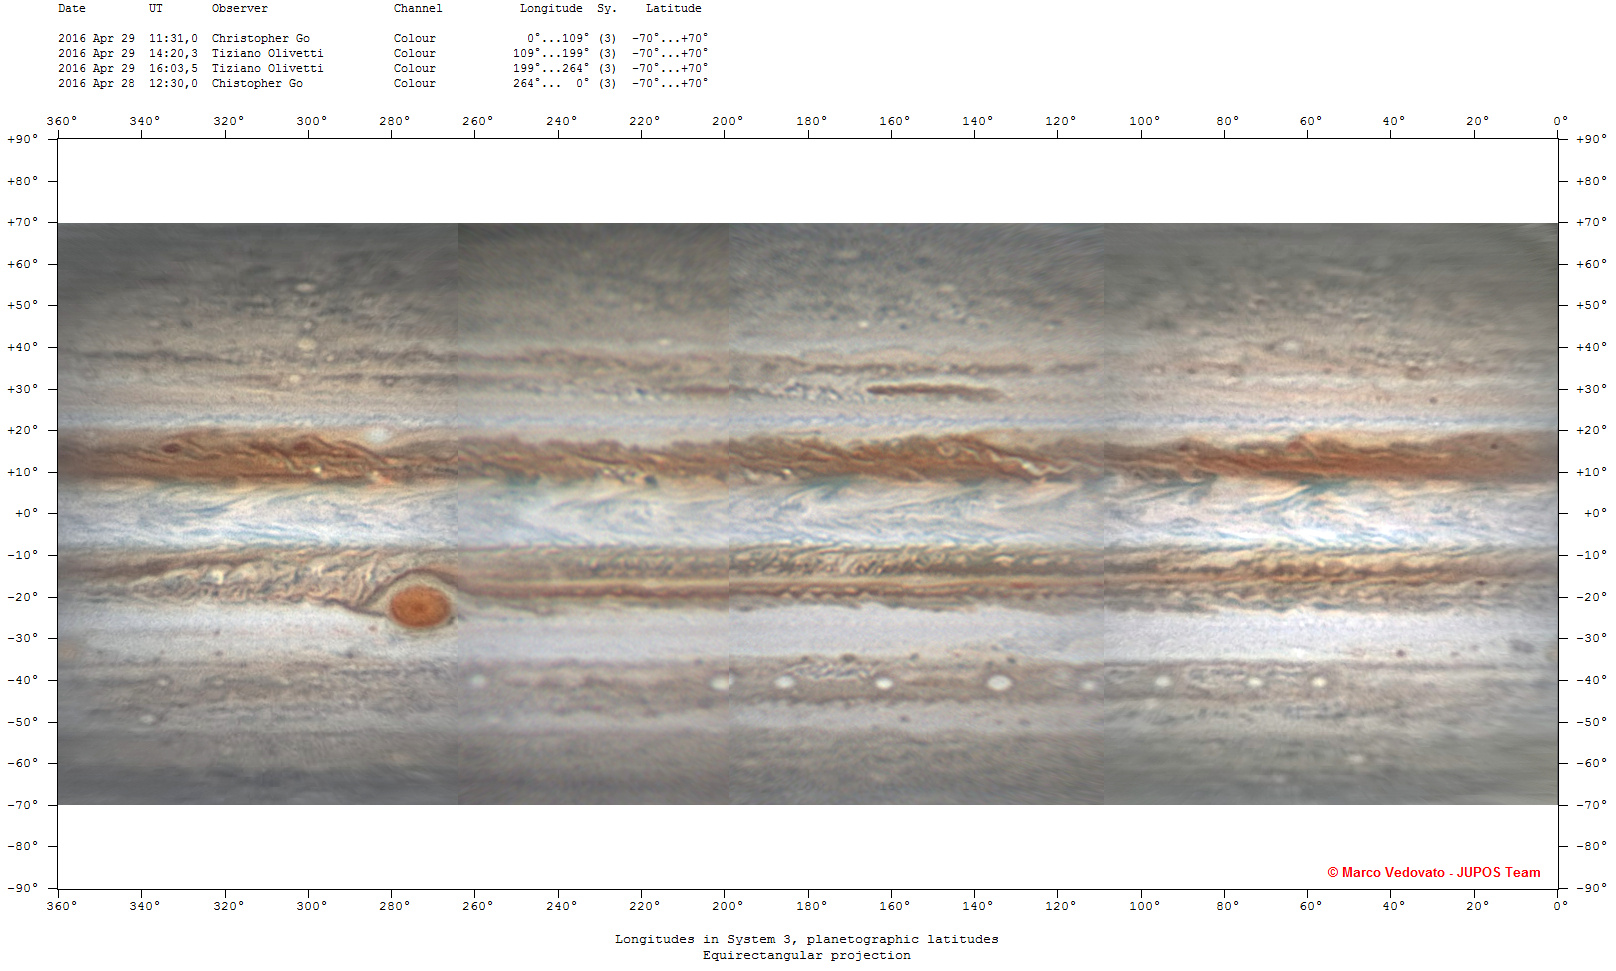 Amateur astronomers regularly analyse their own observations and many participate in studies of the atmosphere of Jupiter. This image shows a nearly full map of Jupiter compiled by the Italian amateur astronomer, Marco Vedovato, from observations obtained by Tiziano Olivetti in Thailand, Christopher Go in the Philippines, and Alexei Pace in Malta. Full maps like this are only possible through the collaboration from observers around the world. The composition of these images by other amateurs like Marco Vedovato helps scientists in their effort to characterise the dynamic atmosphere of Jupiter. Image credit: M. Vedovato/T. Olivetti/C. Go/A. Pace.